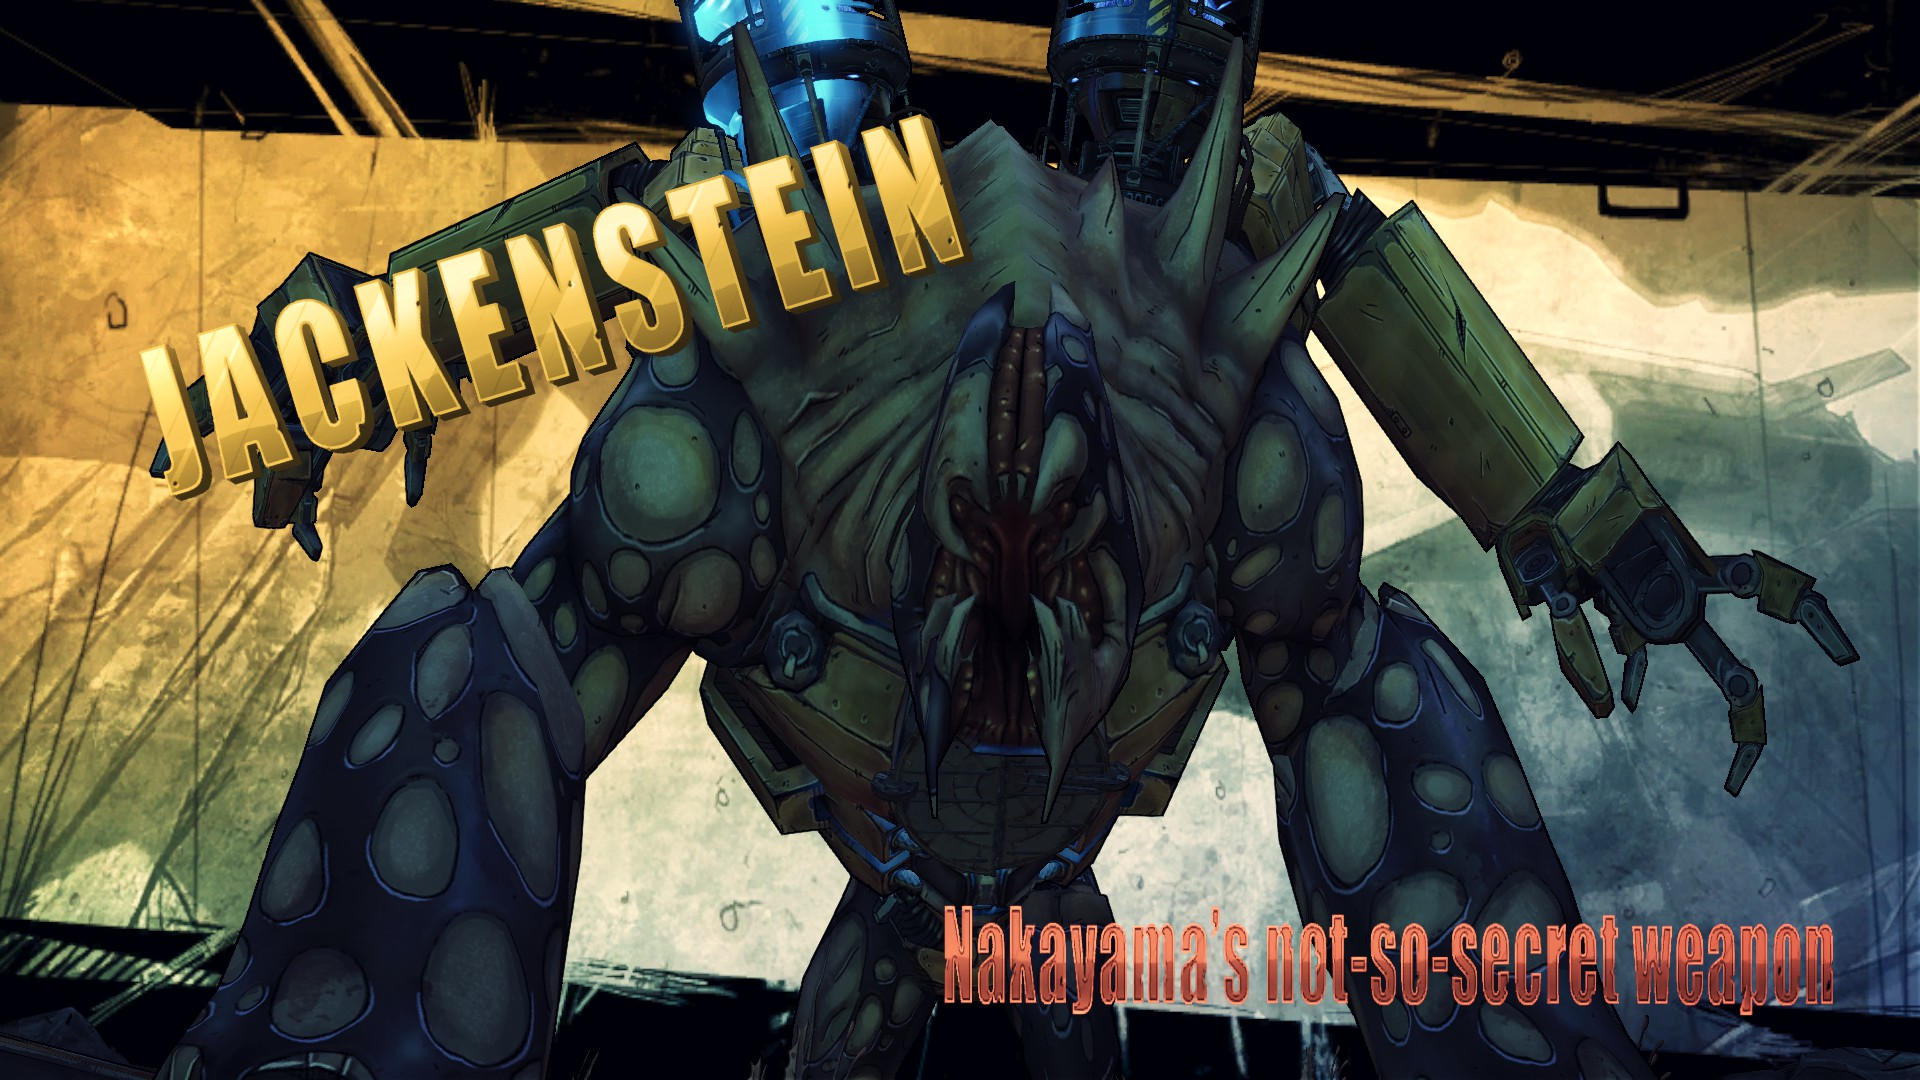 Borderlands 2 can't kill jackenstein